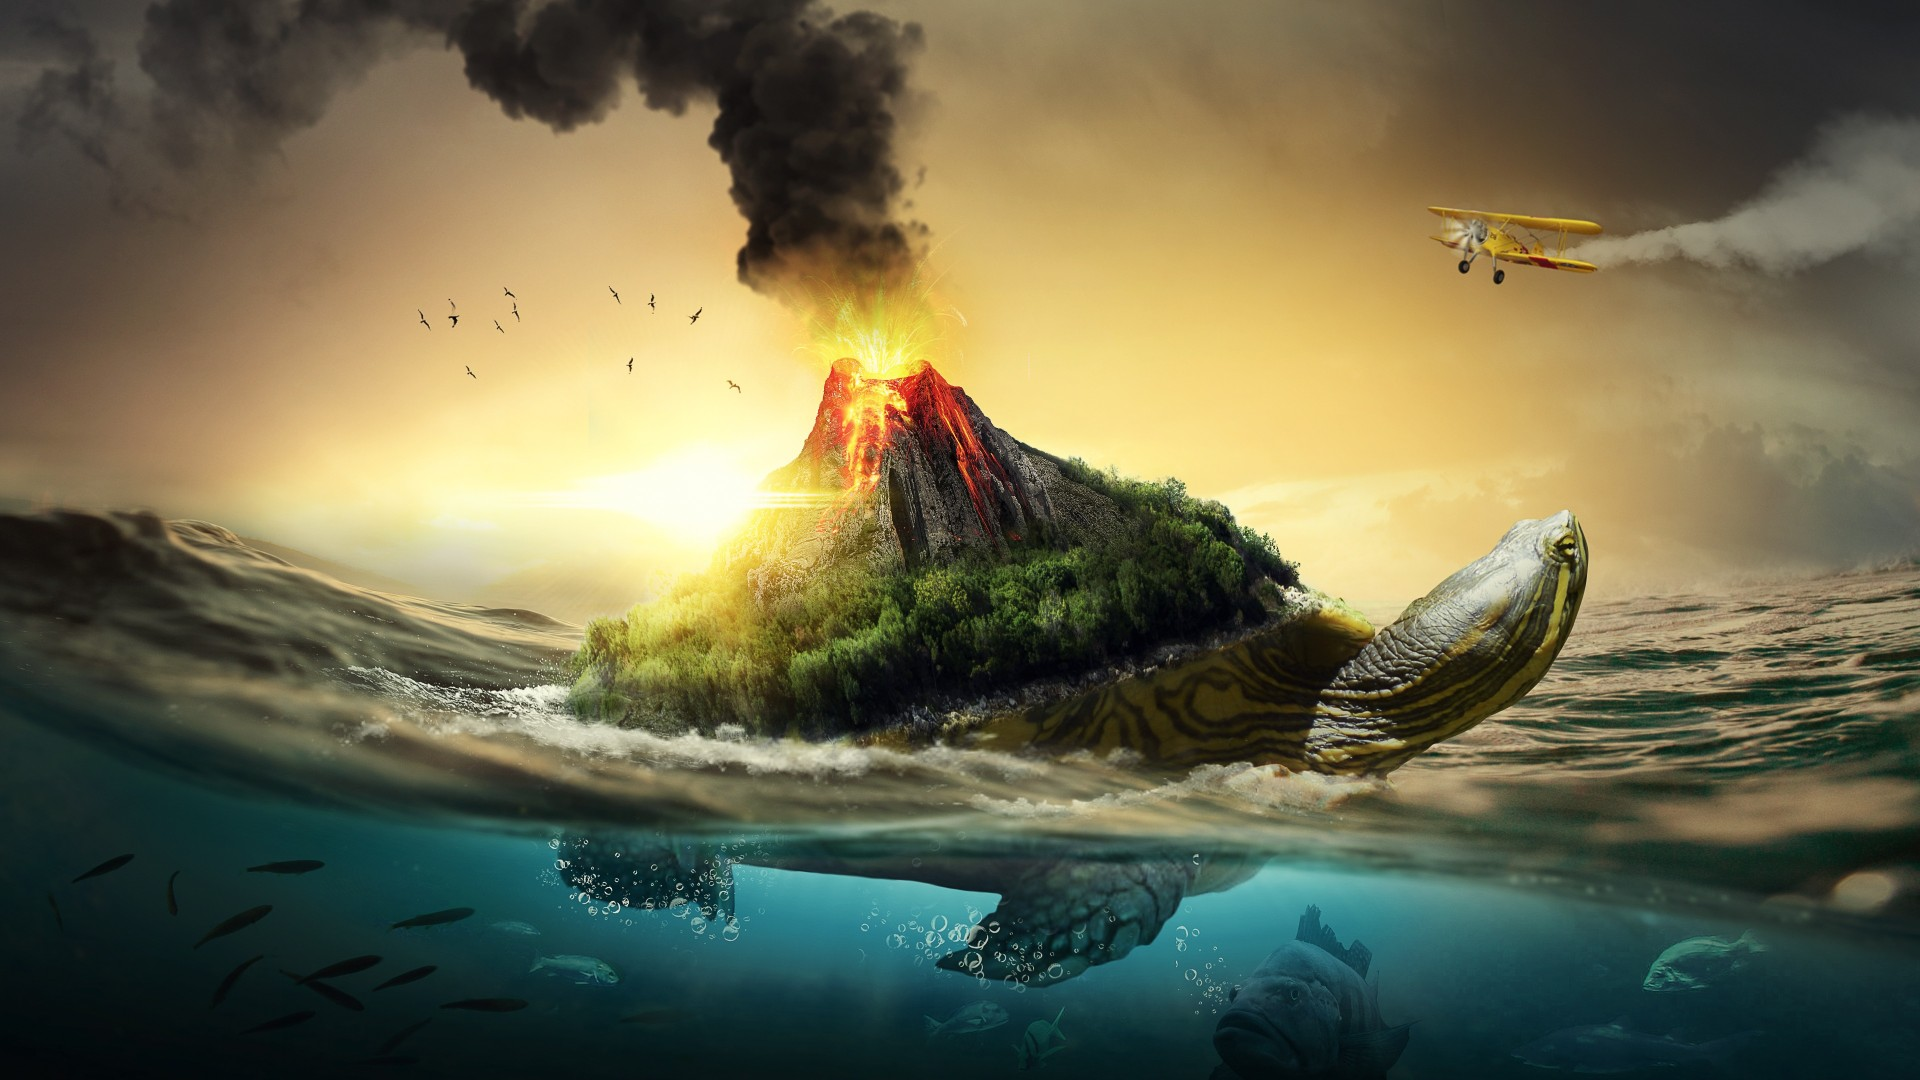 Download 3d Animated Wallpaper For Pc Turtle Volcano 4k Wallpapers Hd Wallpapers Id 27396